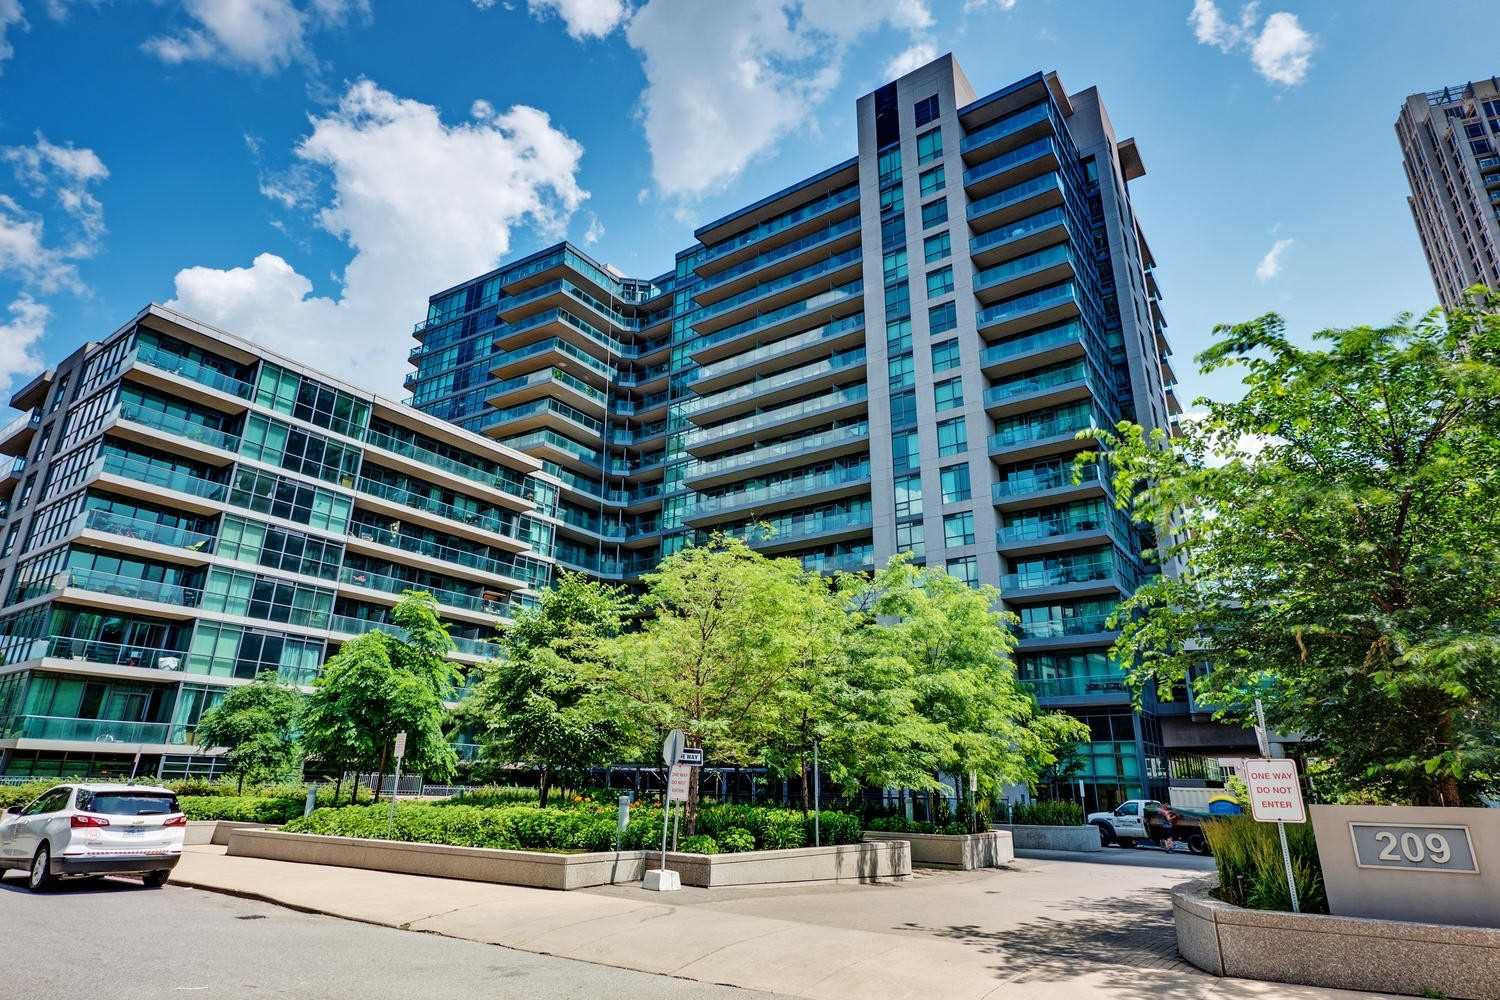 Main Photo: 974 209 Fort York Boulevard in Toronto: Waterfront Communities C1 Condo for sale (Toronto C01)  : MLS®# C4599668